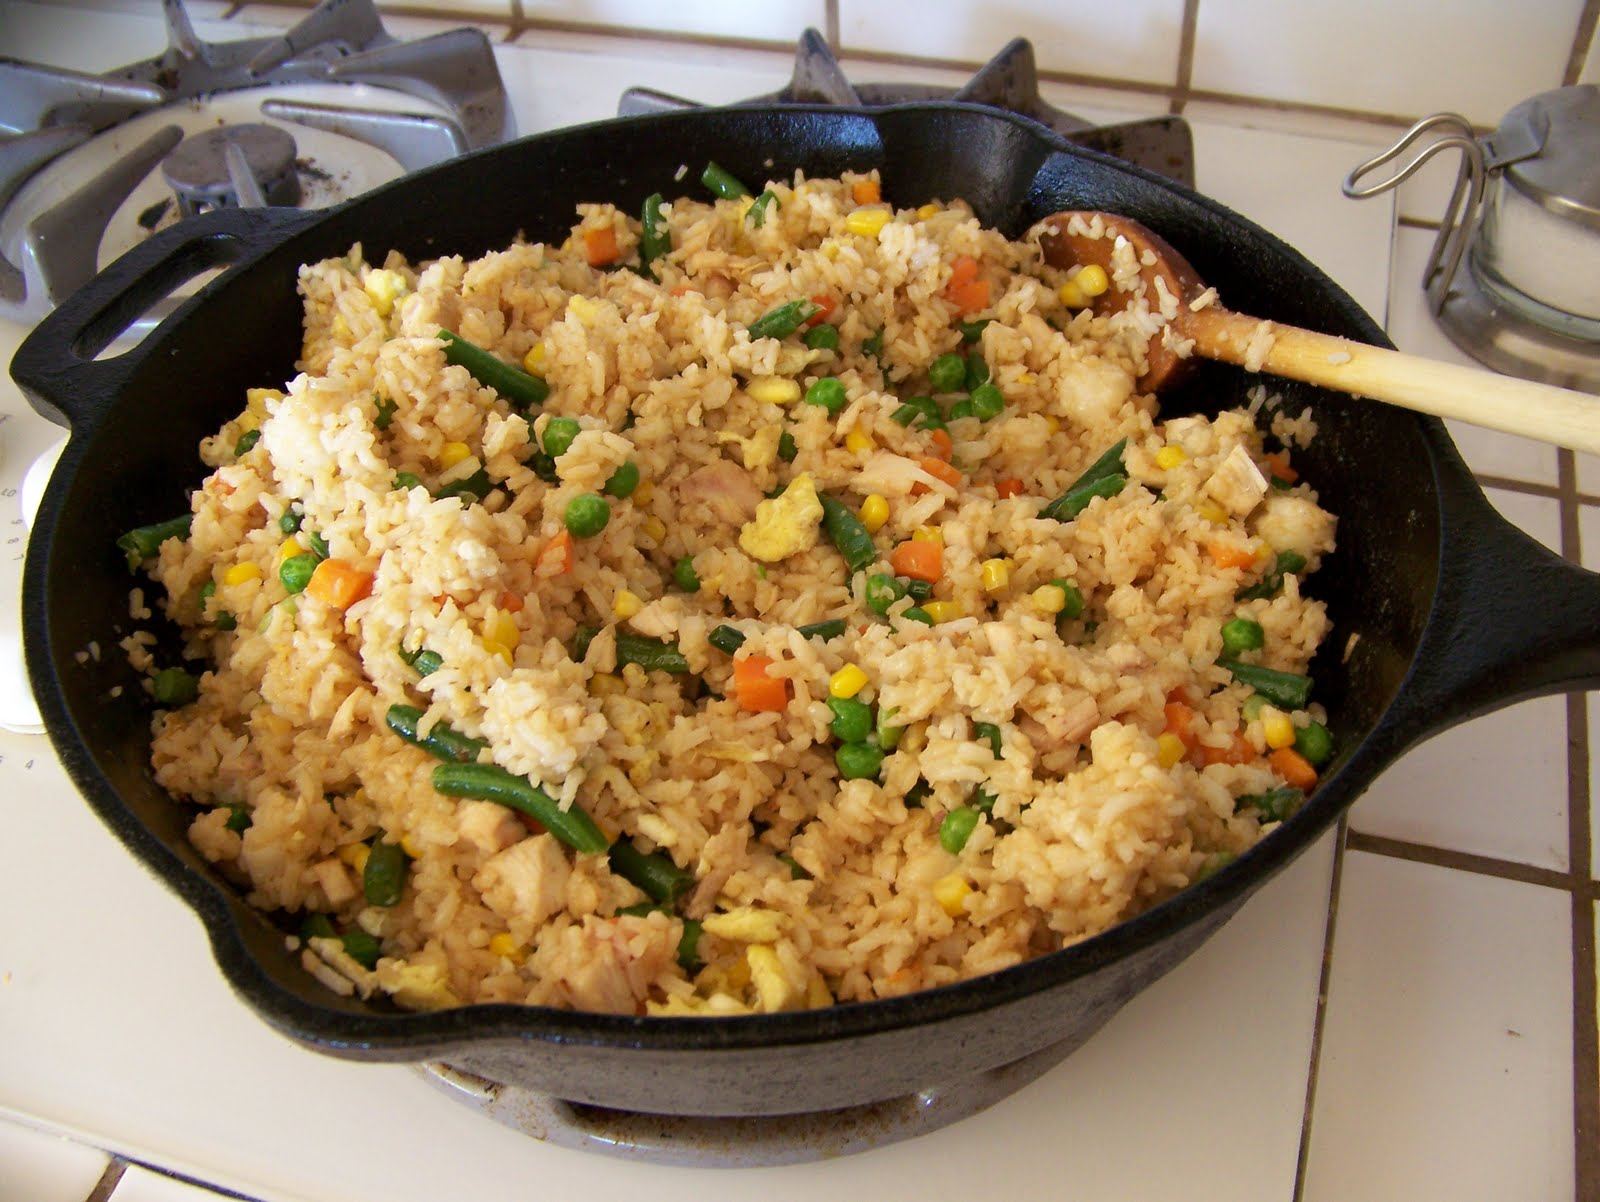 Near to nothing super cheap super easyfried rice ccuart Image collections